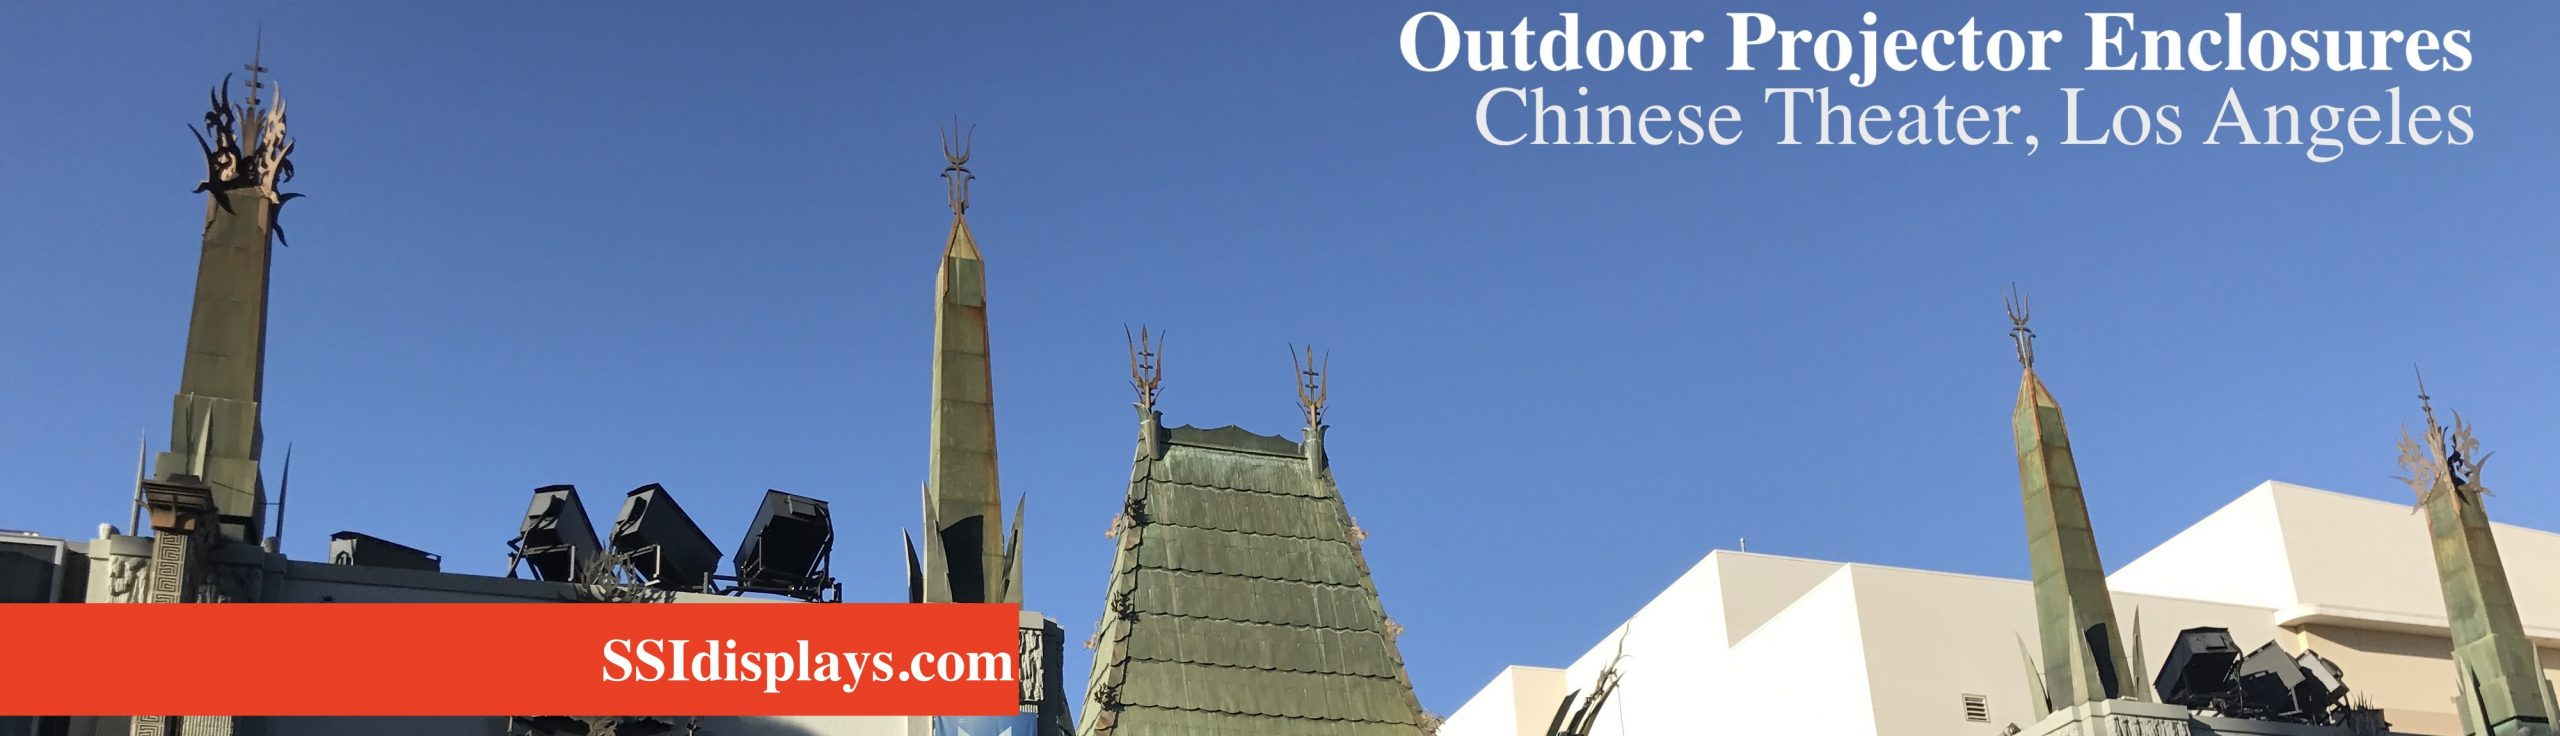 Chinese Theater Projector Outdoor Enclosures Los Angeles